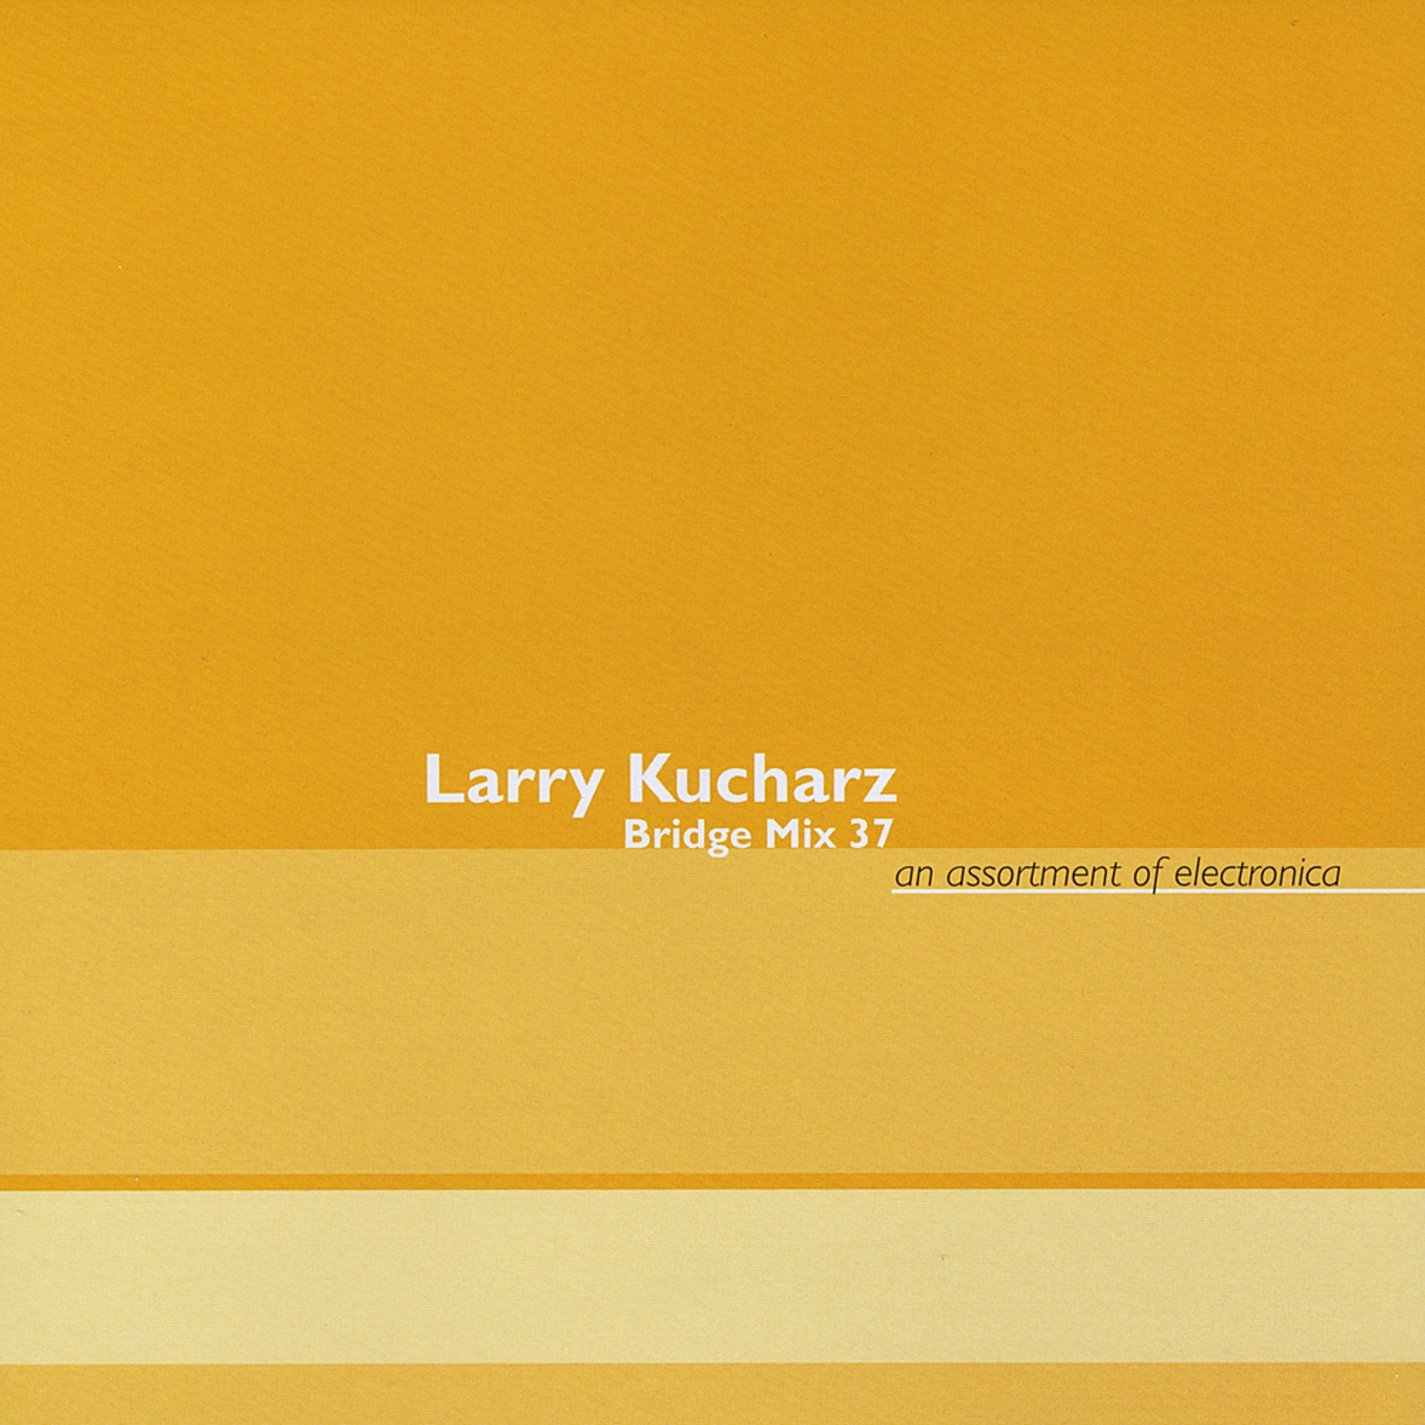 Larry Kucharz — Bridge Mix 37